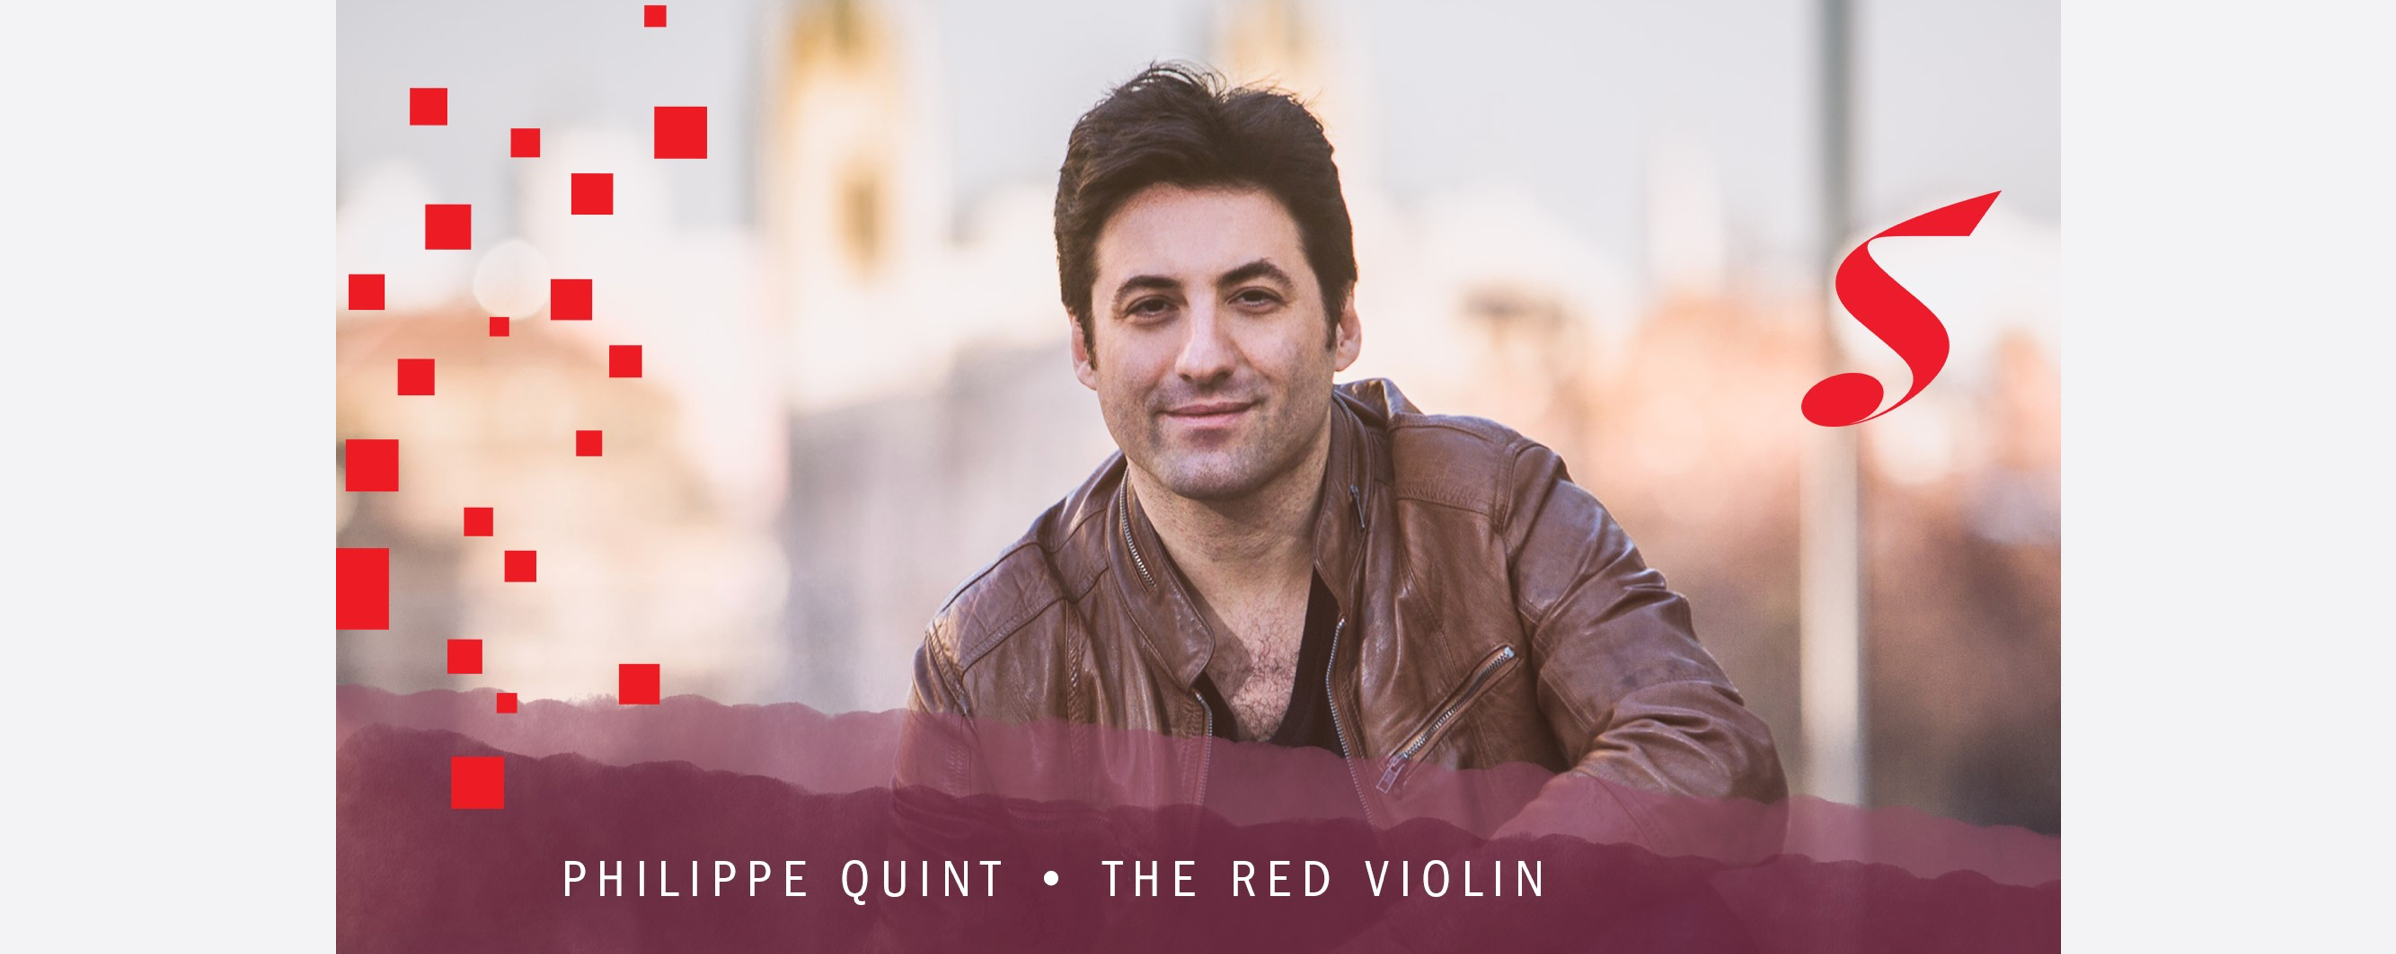 Philippe Quint • The Red Violin